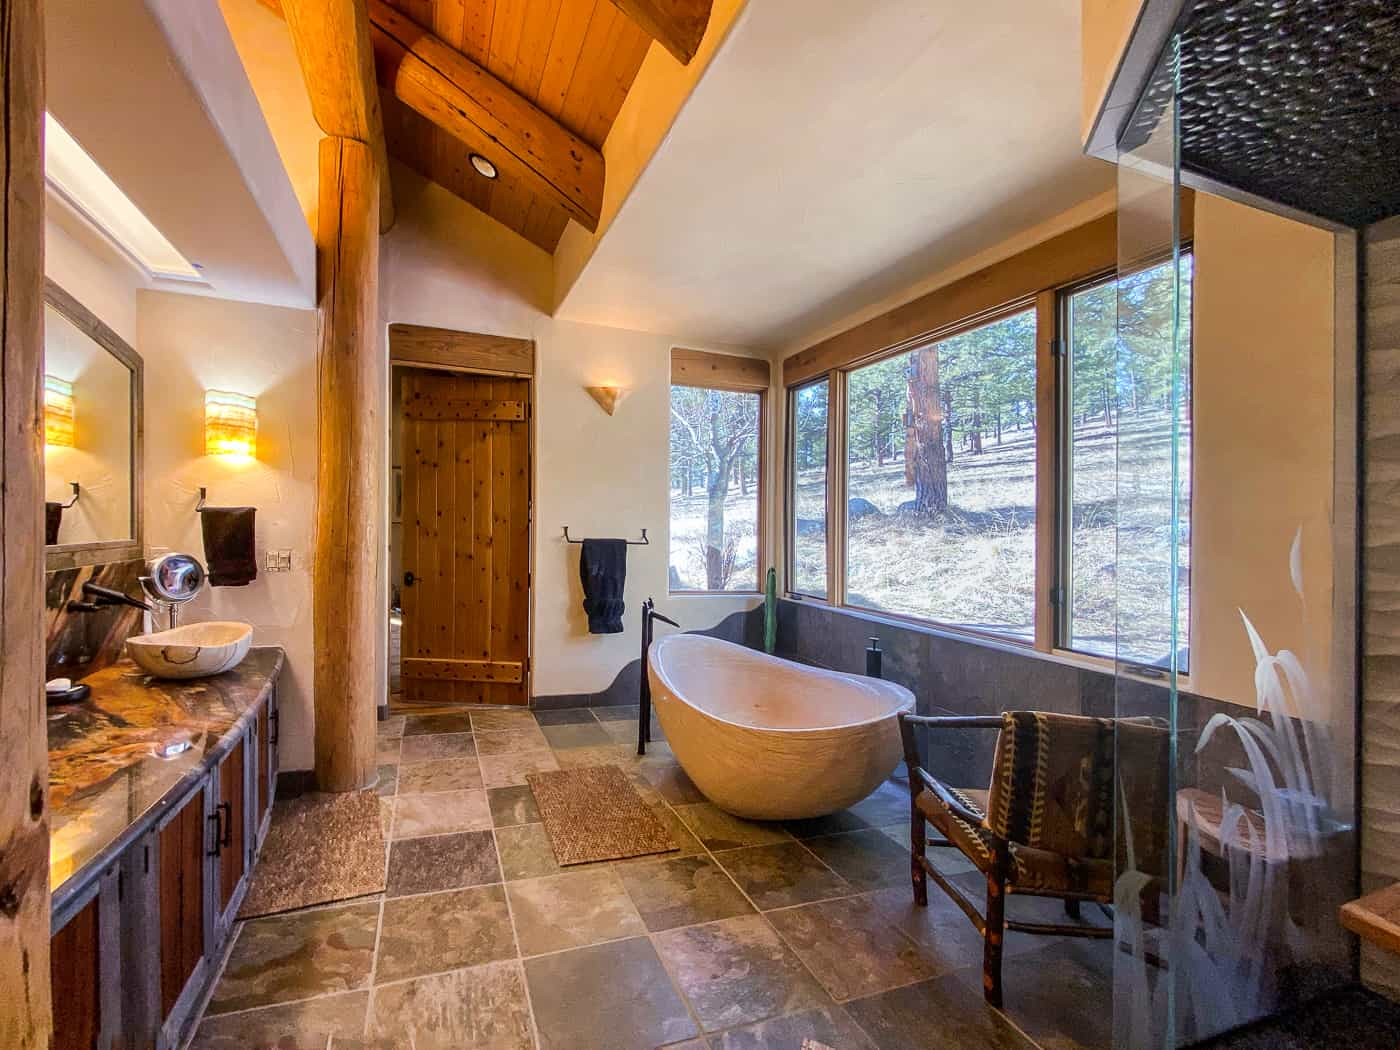 Rustic bathroom remodel with soaking tub and big windows